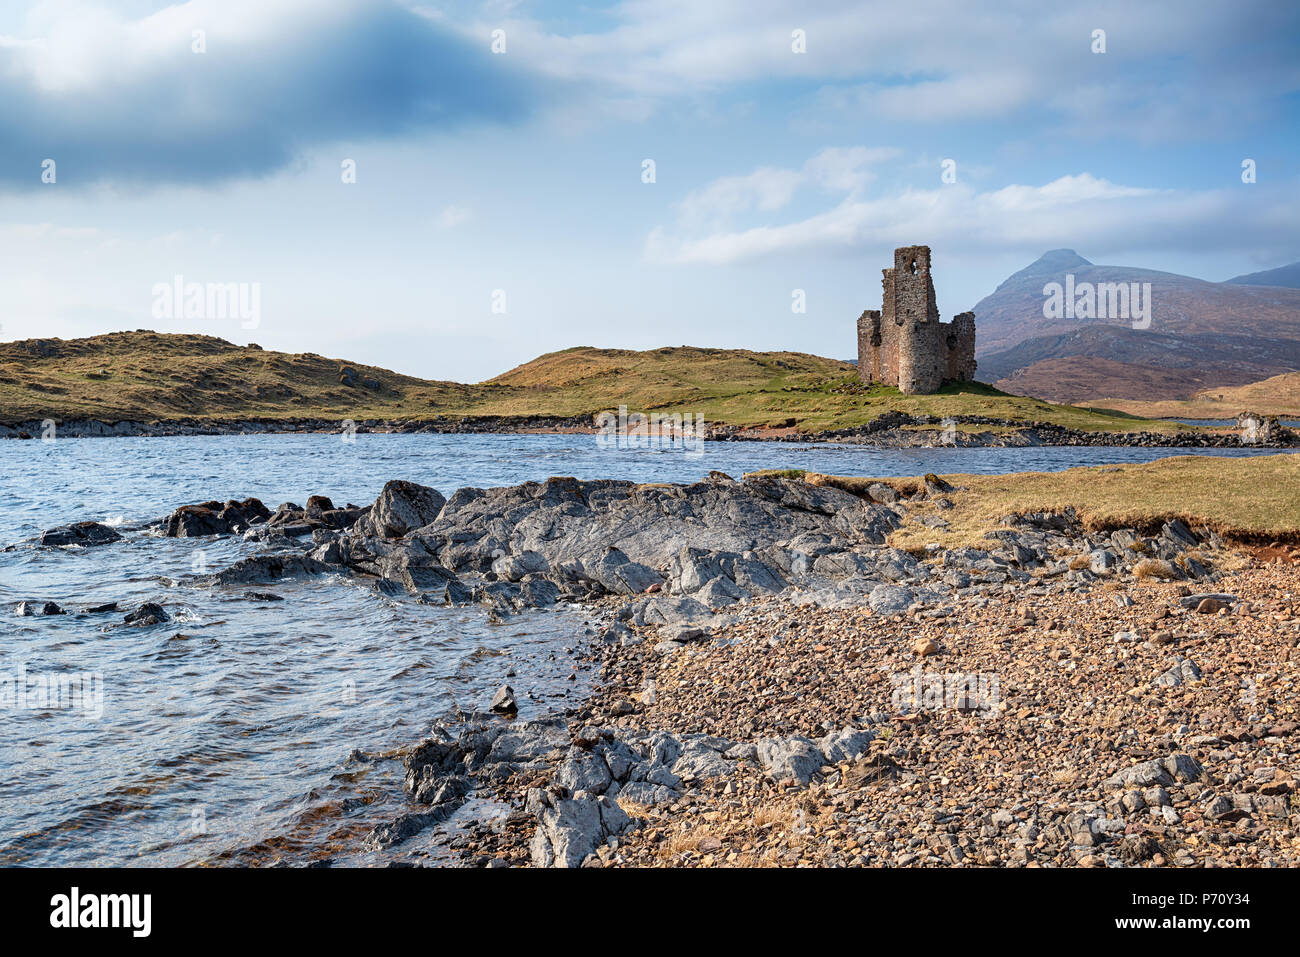 The ruins of Ardvreck Castle on the shores of Loch Assynt - Stock Image